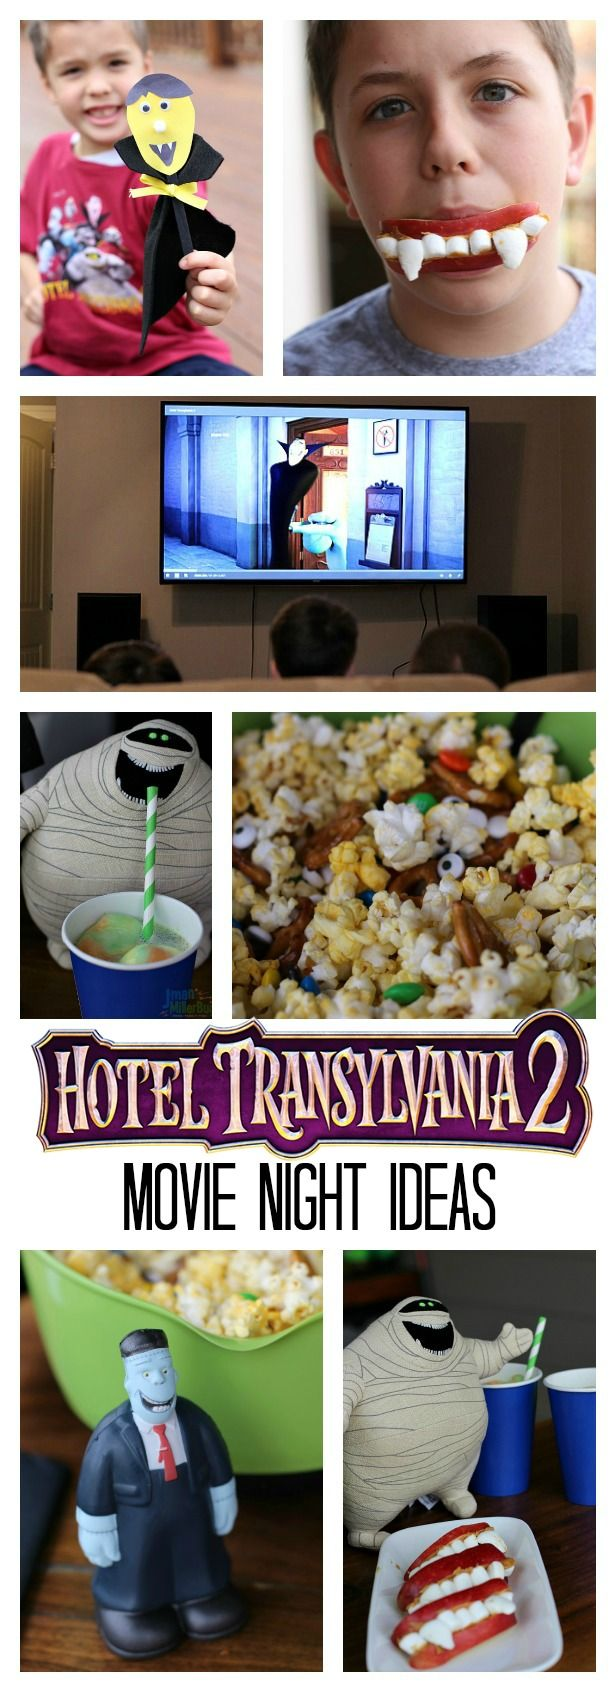 Bring Hotel Transylvania 2 home of Bu-ray and Digital and make it a fun family movie night with these easy ideas! #HotelT2 #ad